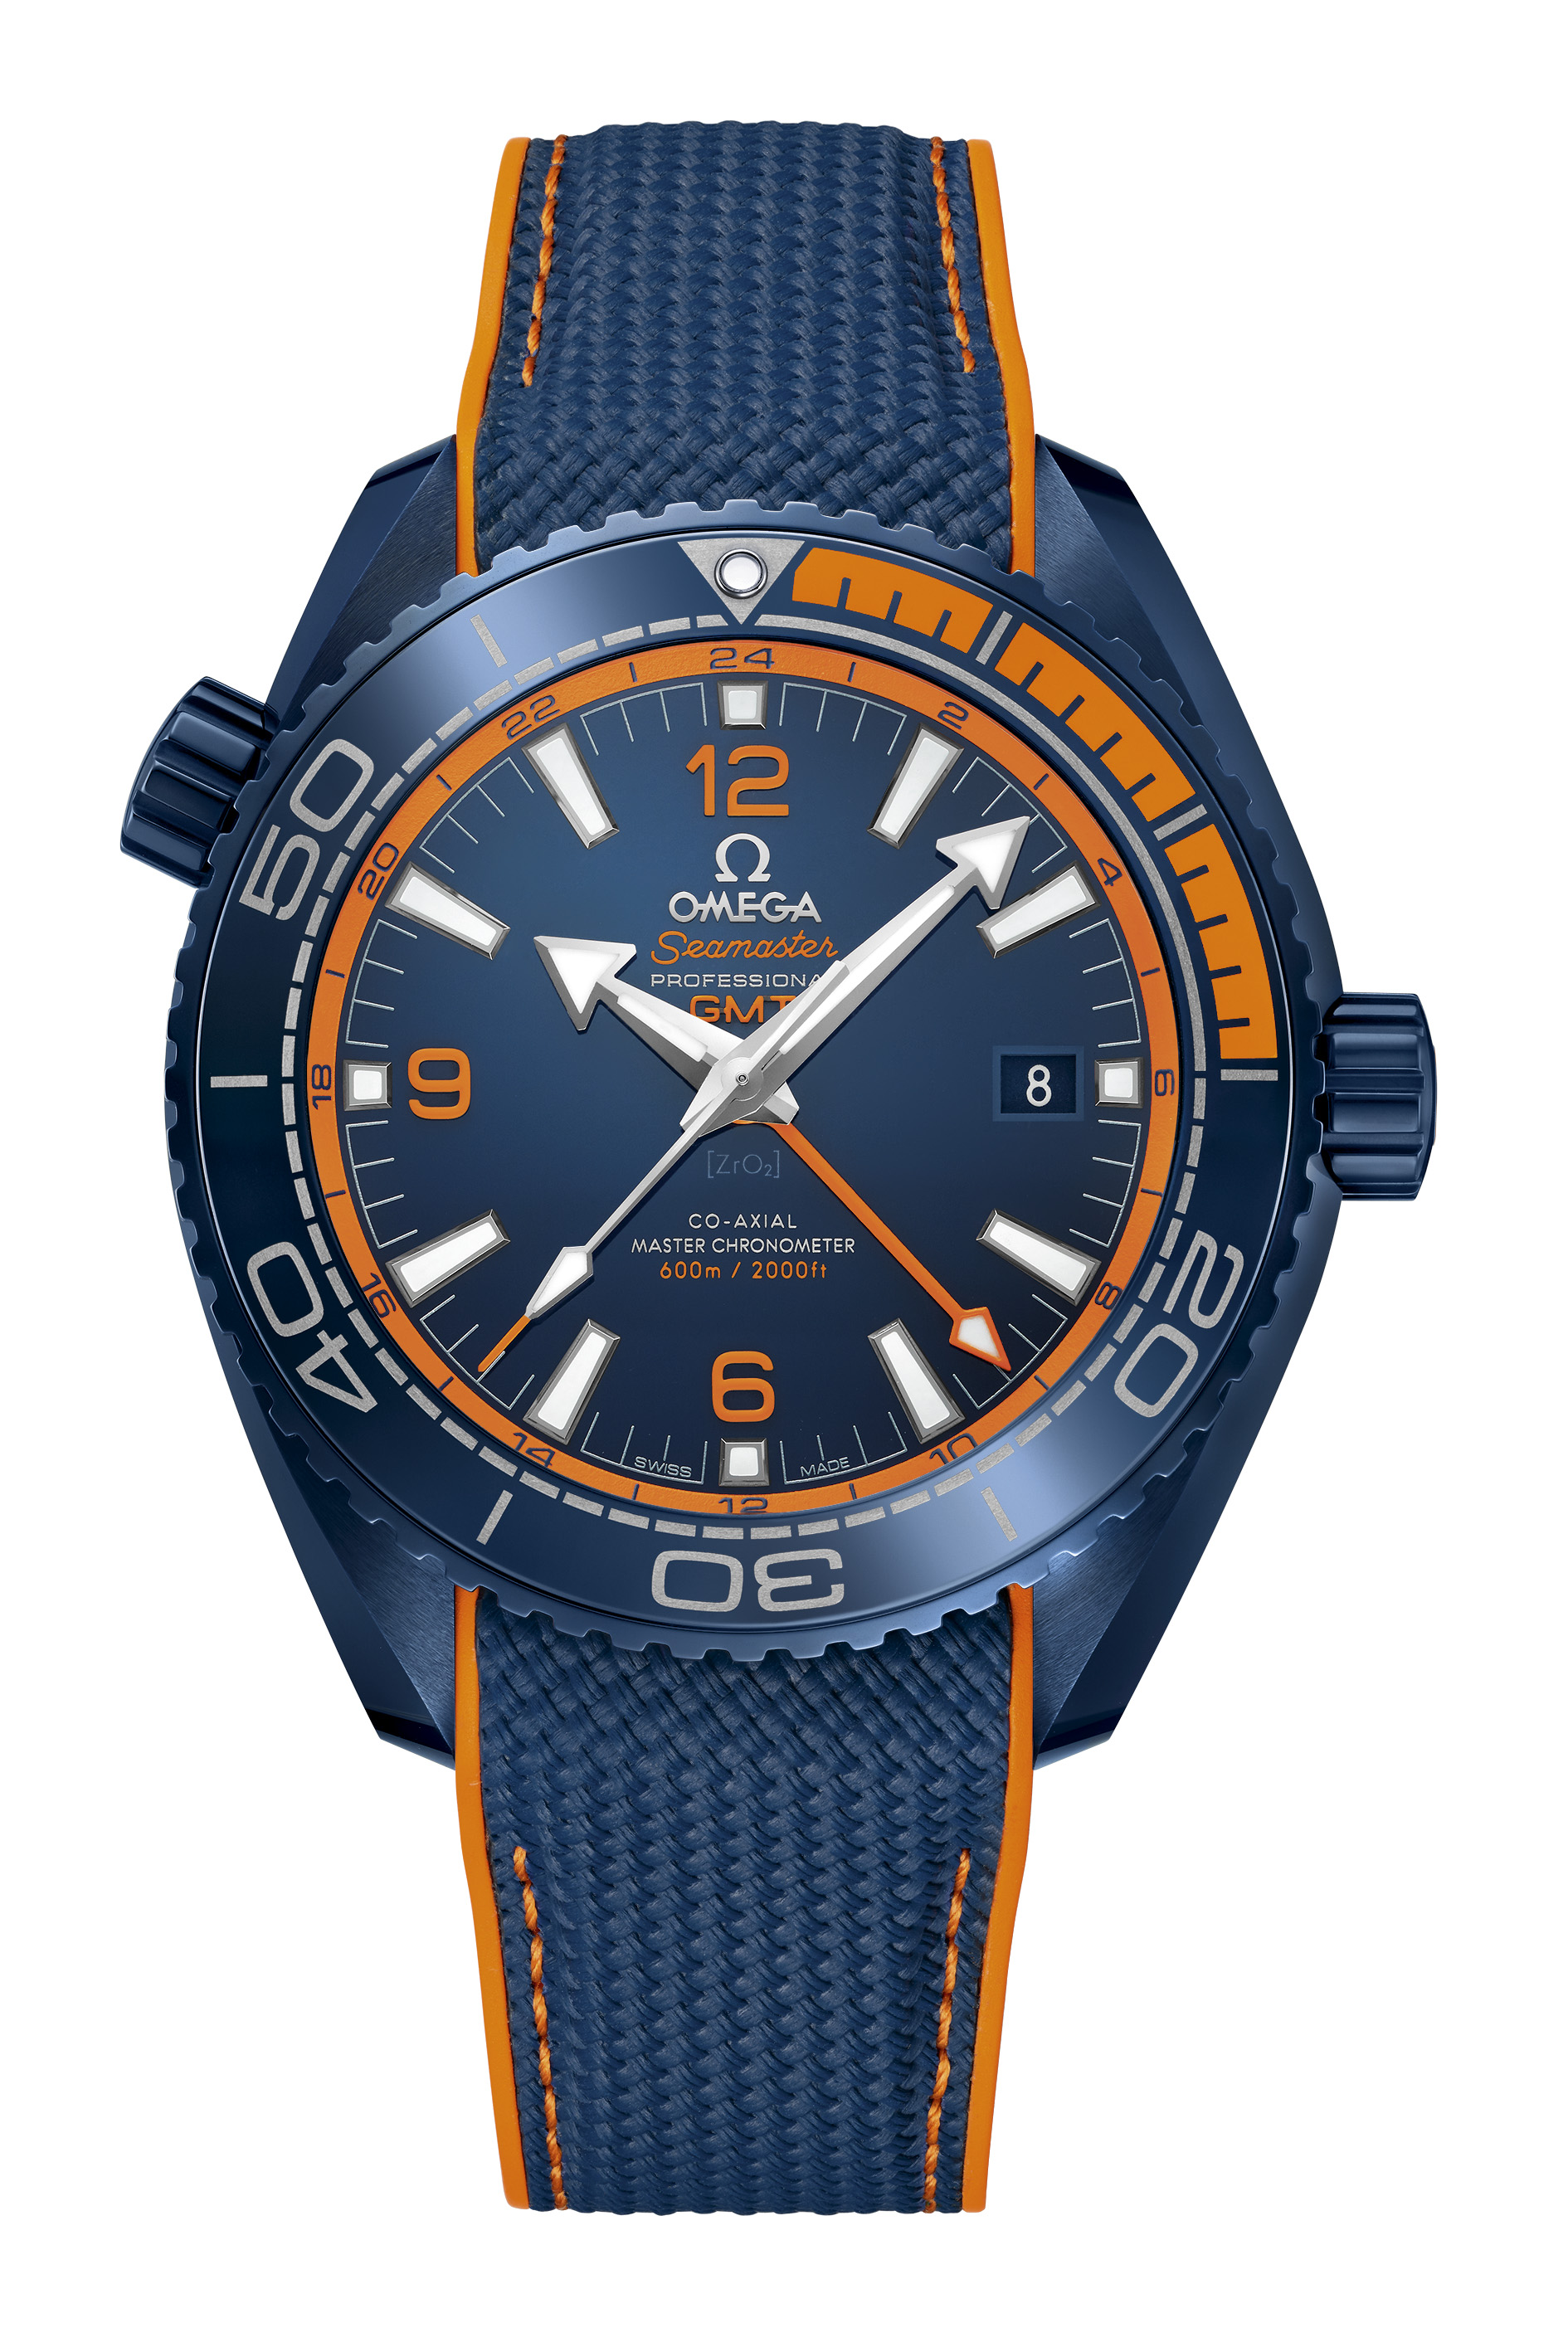 Omega Seamaster Planet Ocean GMT Master Chronometer